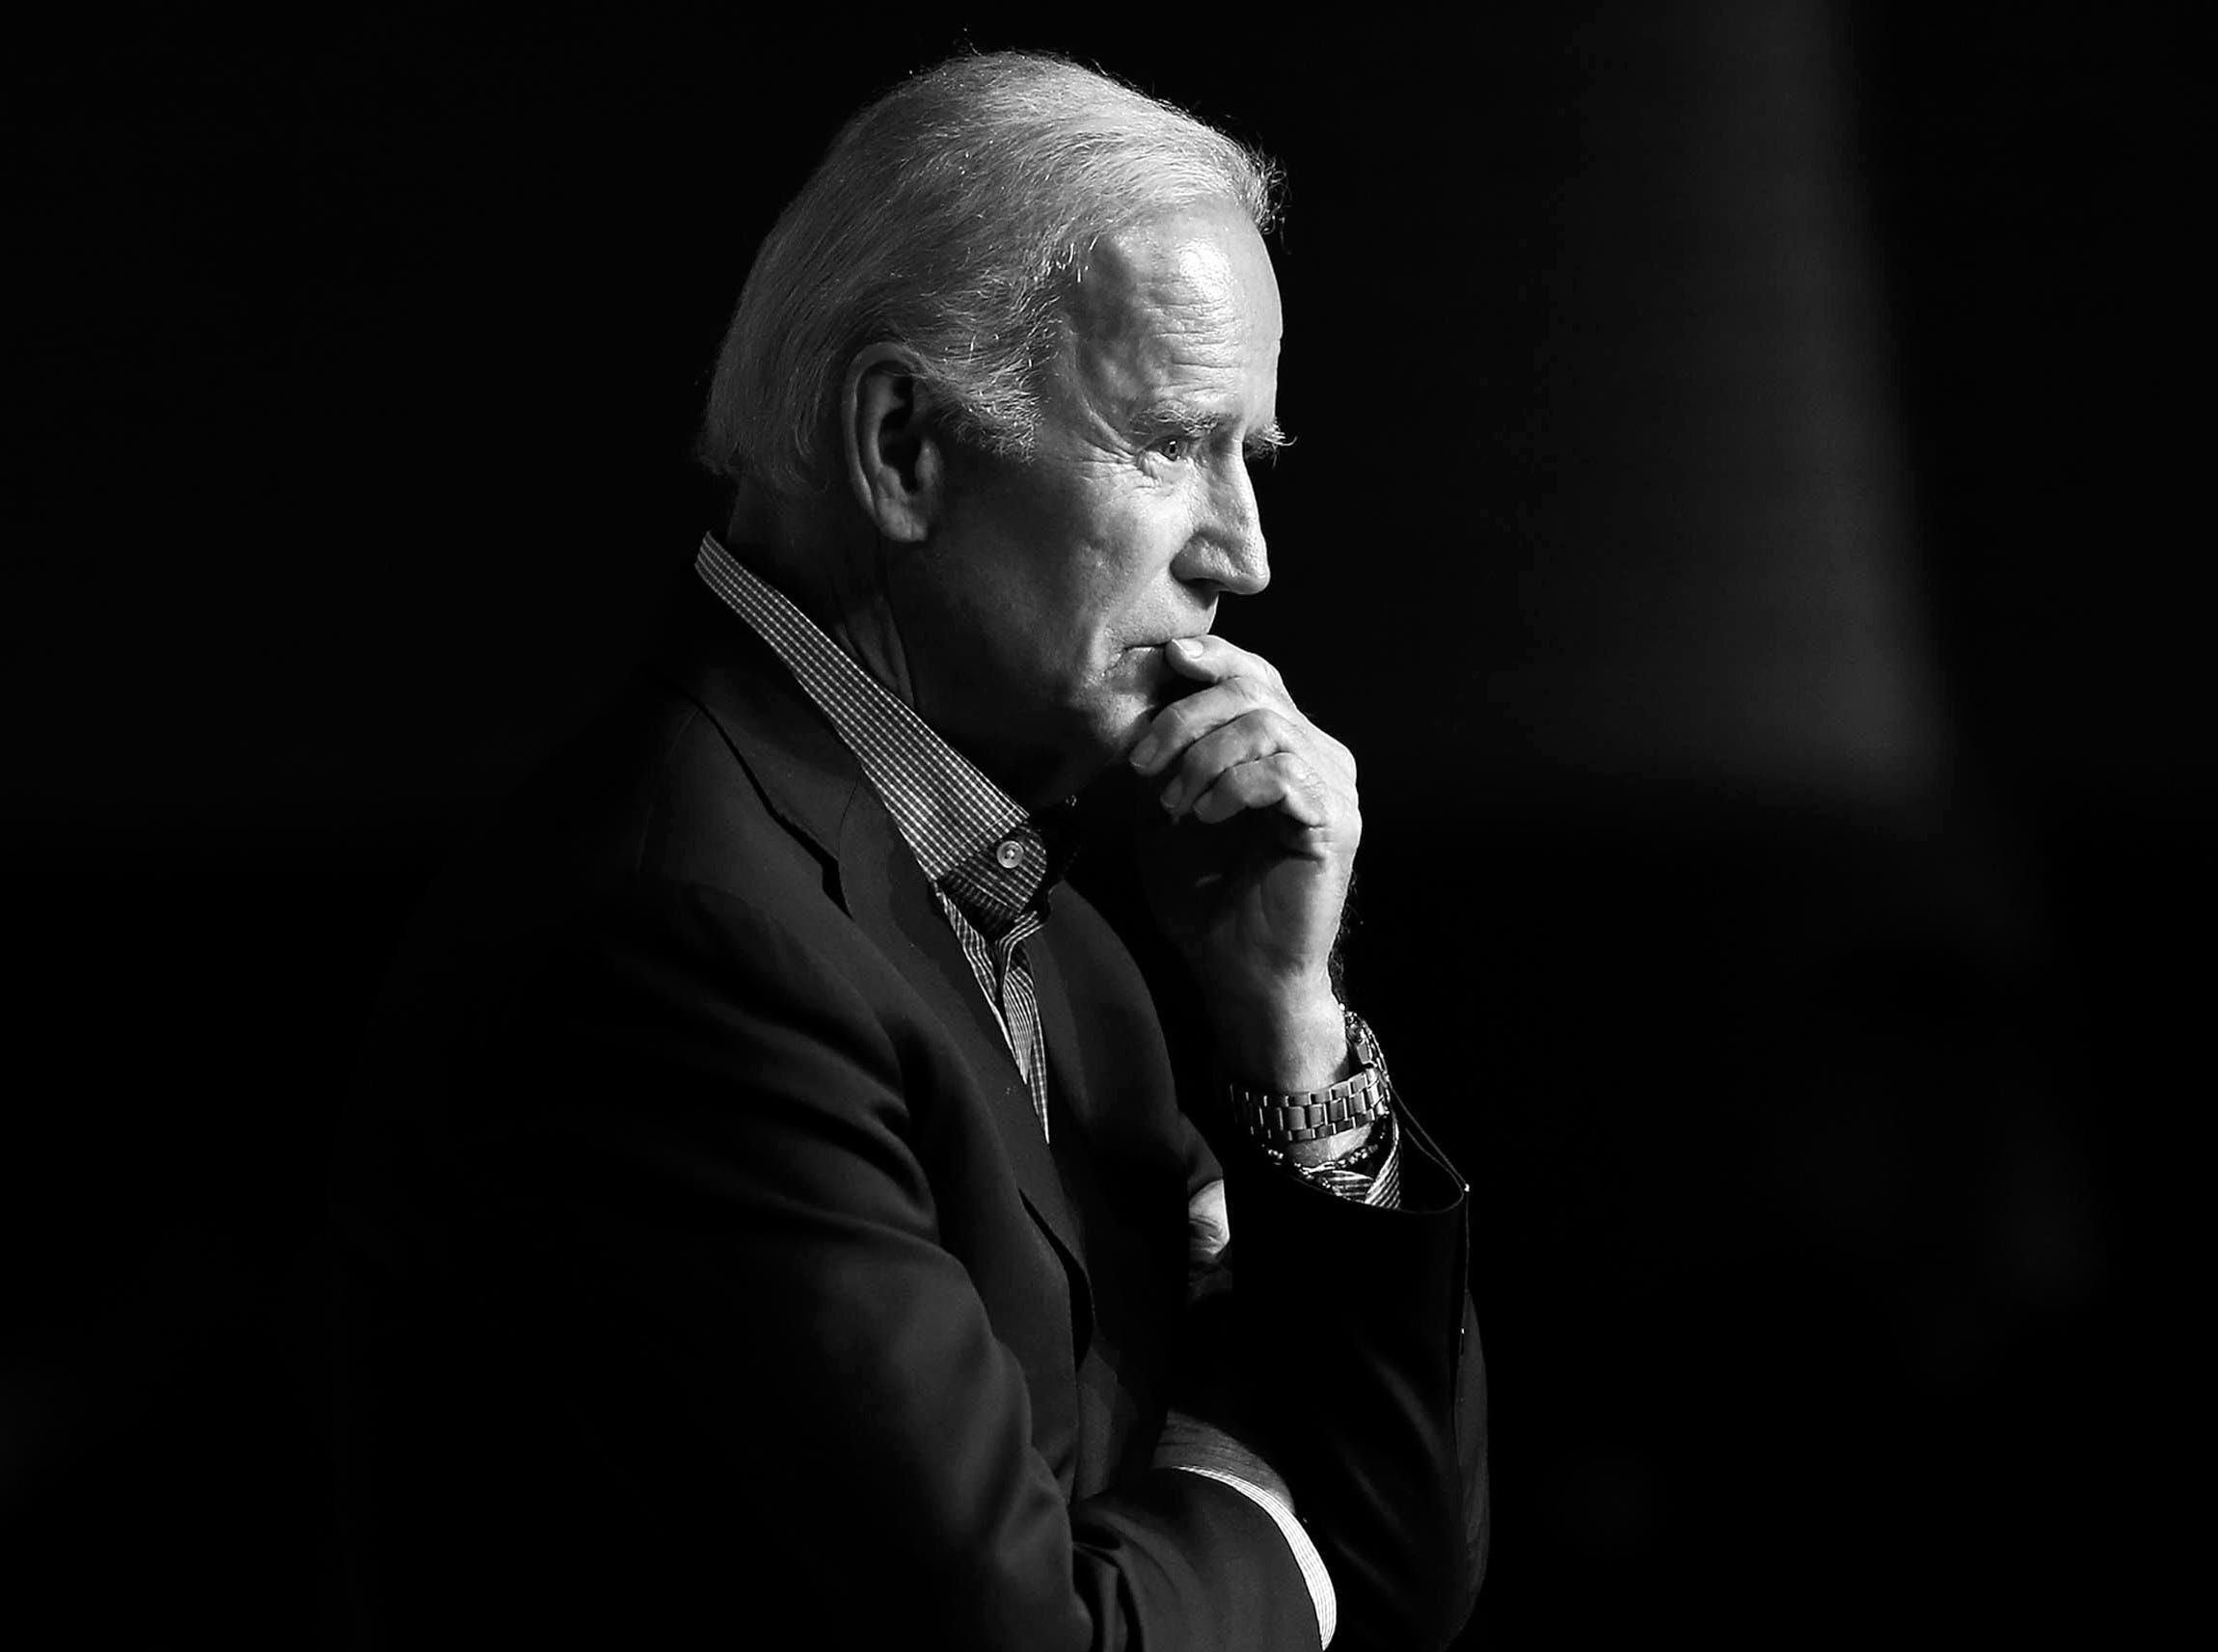 October 13, 2017--Joe Biden, the 47th vice president of the United States,  discussed 'It's On Us,' a national campaign to end sexual assault on college campuses during his visit to Rutgers University. The campaign was launched in 2014 following recommendations from the White House Task Force to Prevent Sexual Assault.